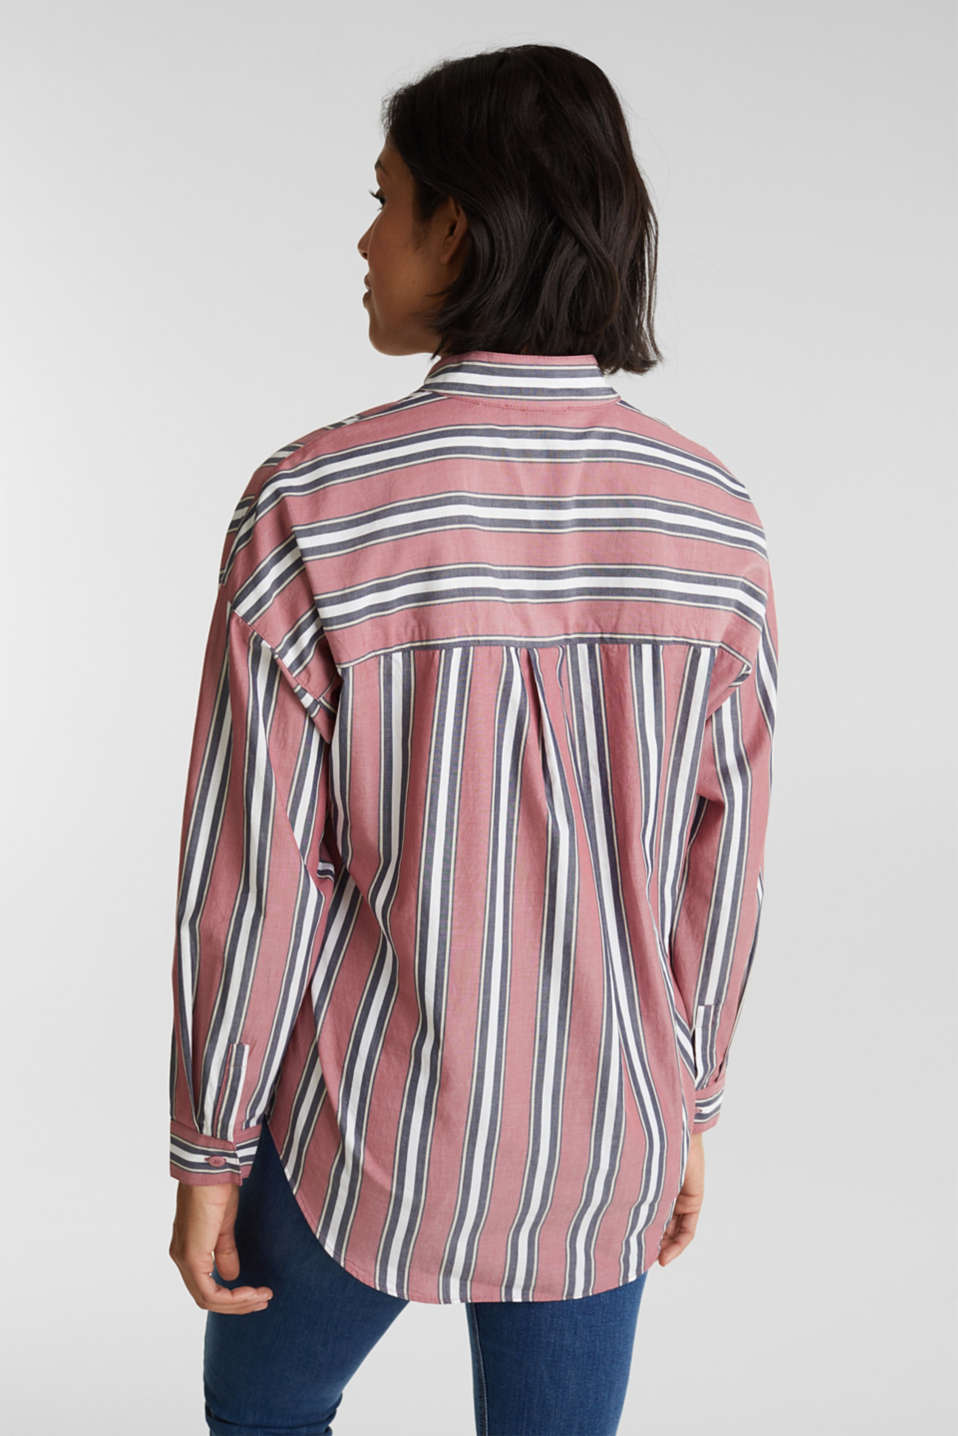 Slip-on blouse with a stand-up collar, 100% cotton, BLUSH, detail image number 3